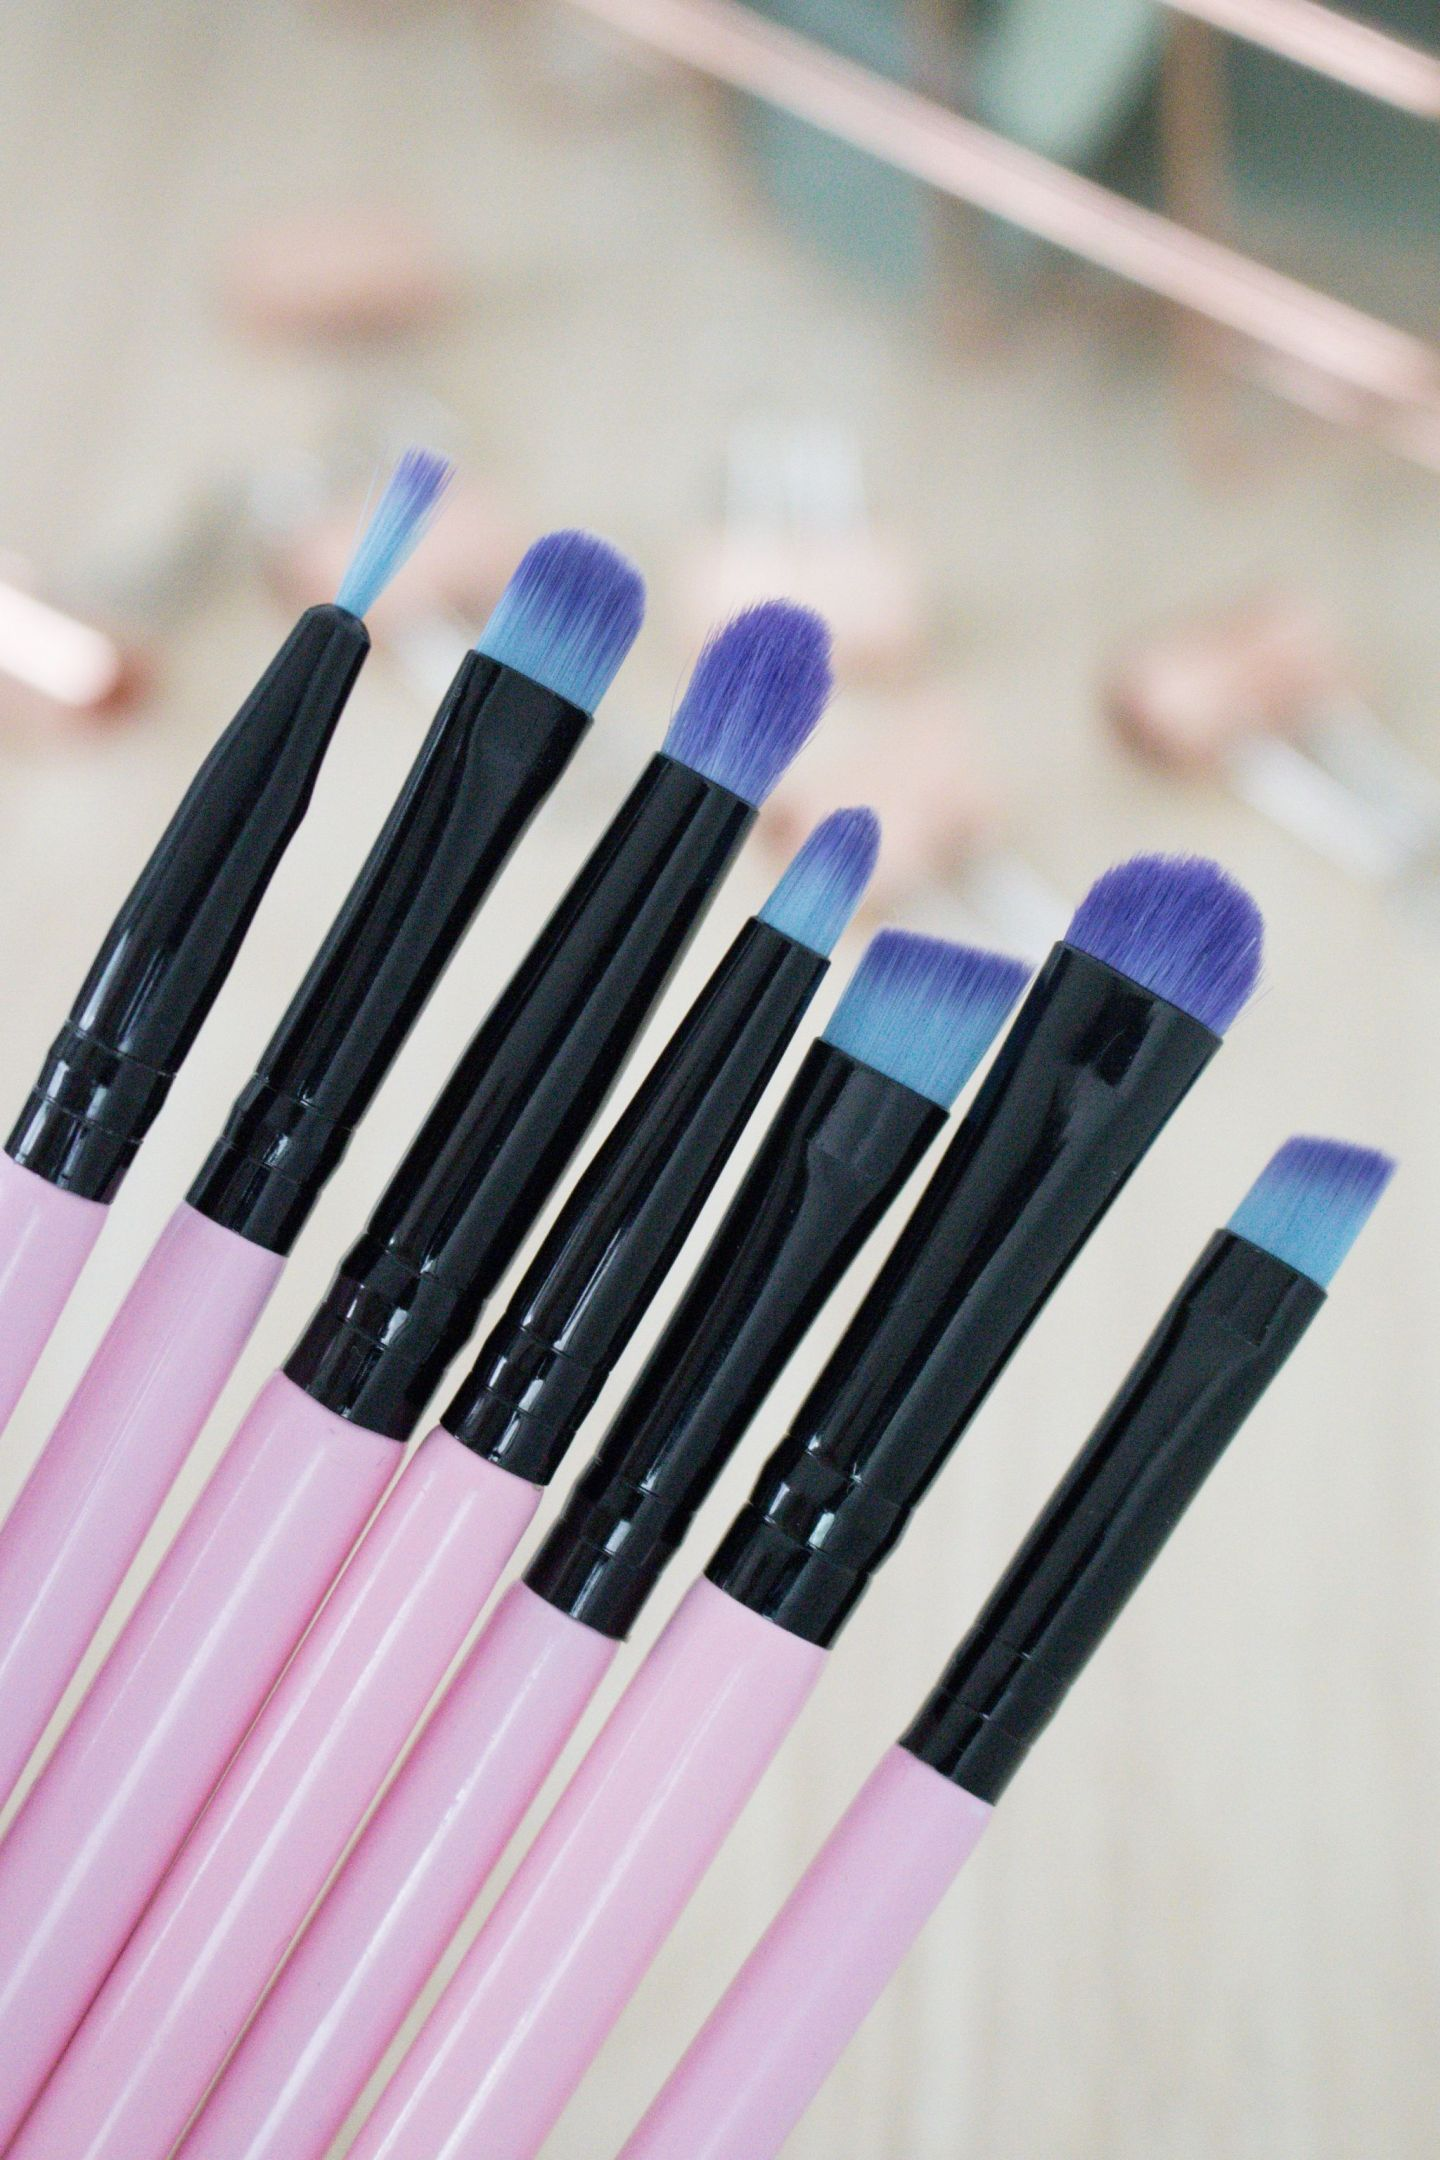 Spectrum Millennial Pink Eye Brushes